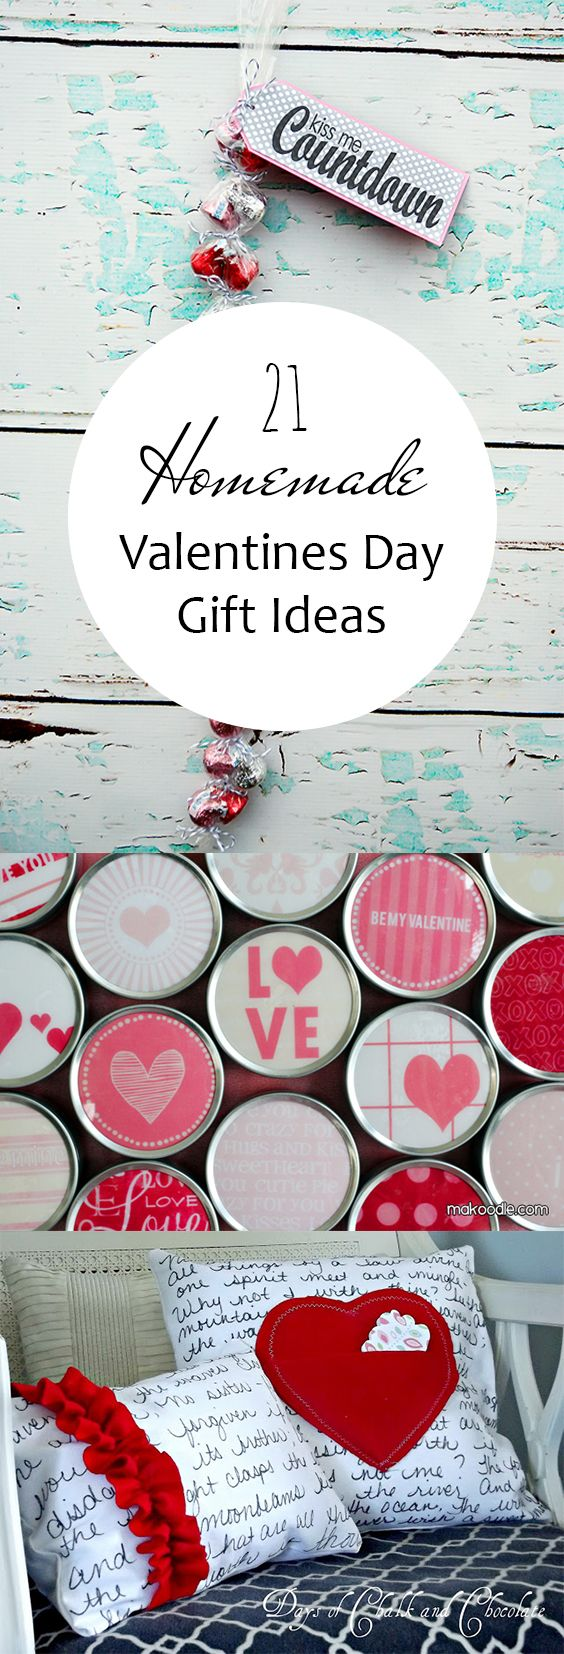 414 best Valentine\'s Day images on Pinterest | Funny valentine ...